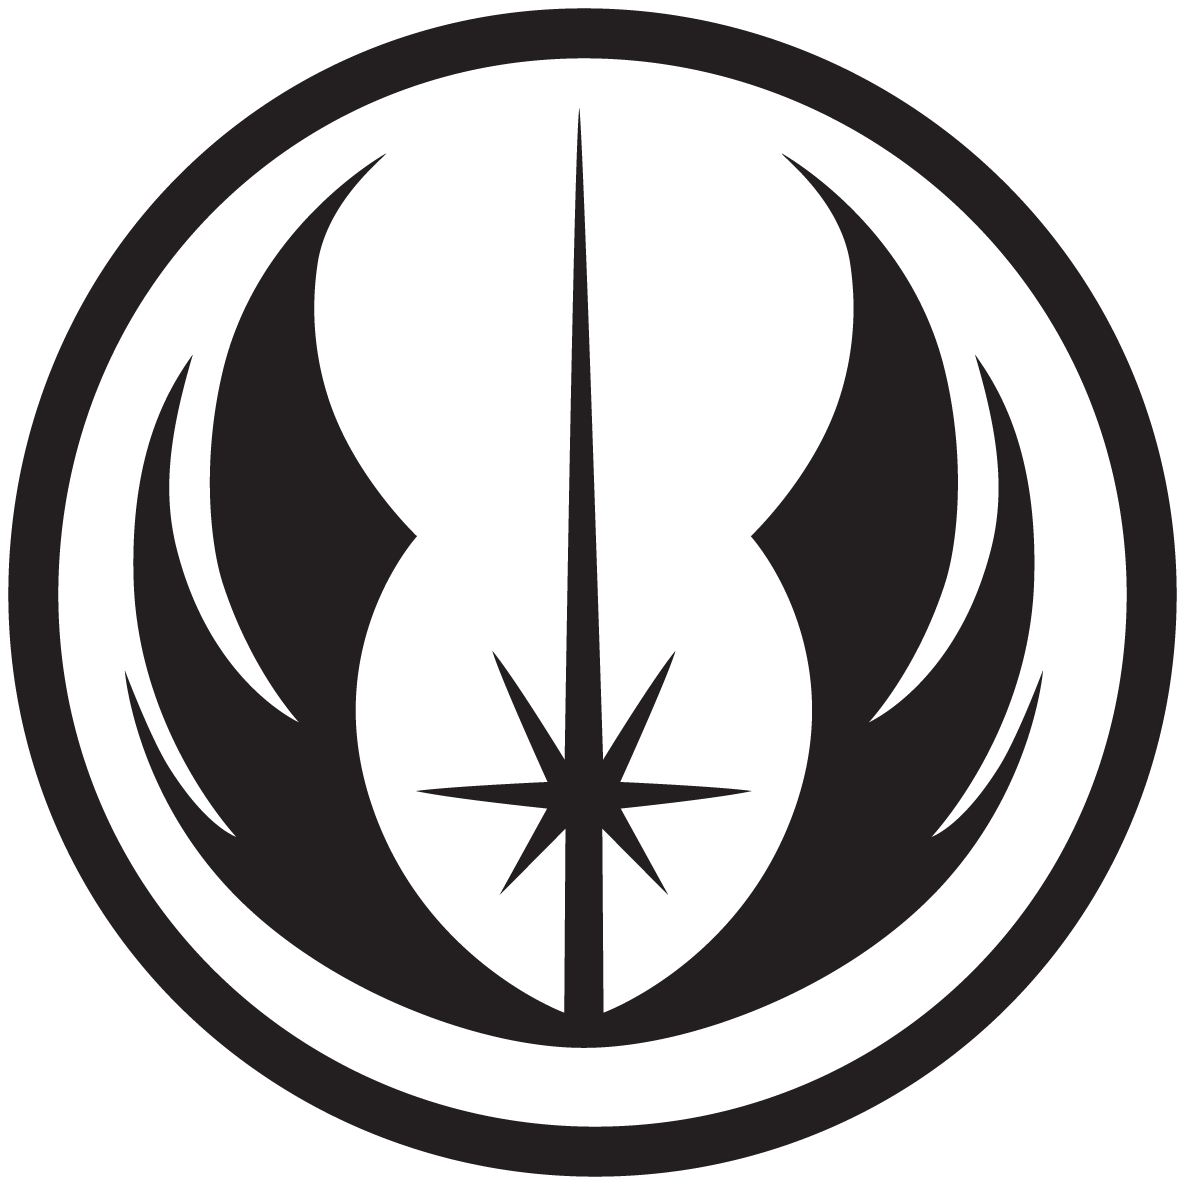 Star wars logos wallpapers by swmand4 on deviantart - Republic star wars logo ...